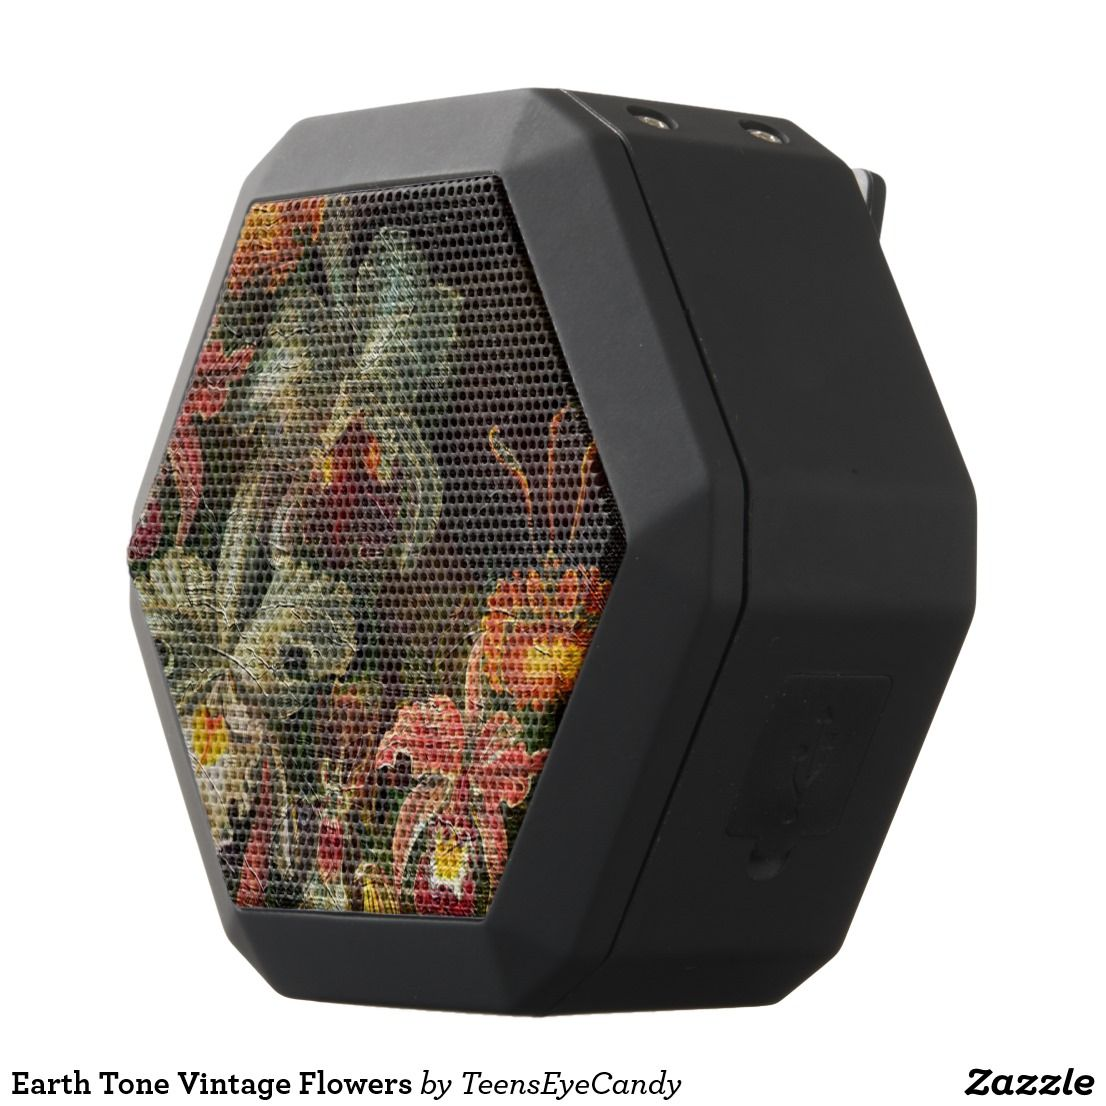 Earth Tone Vintage Flowers Black Bluetooth Speaker